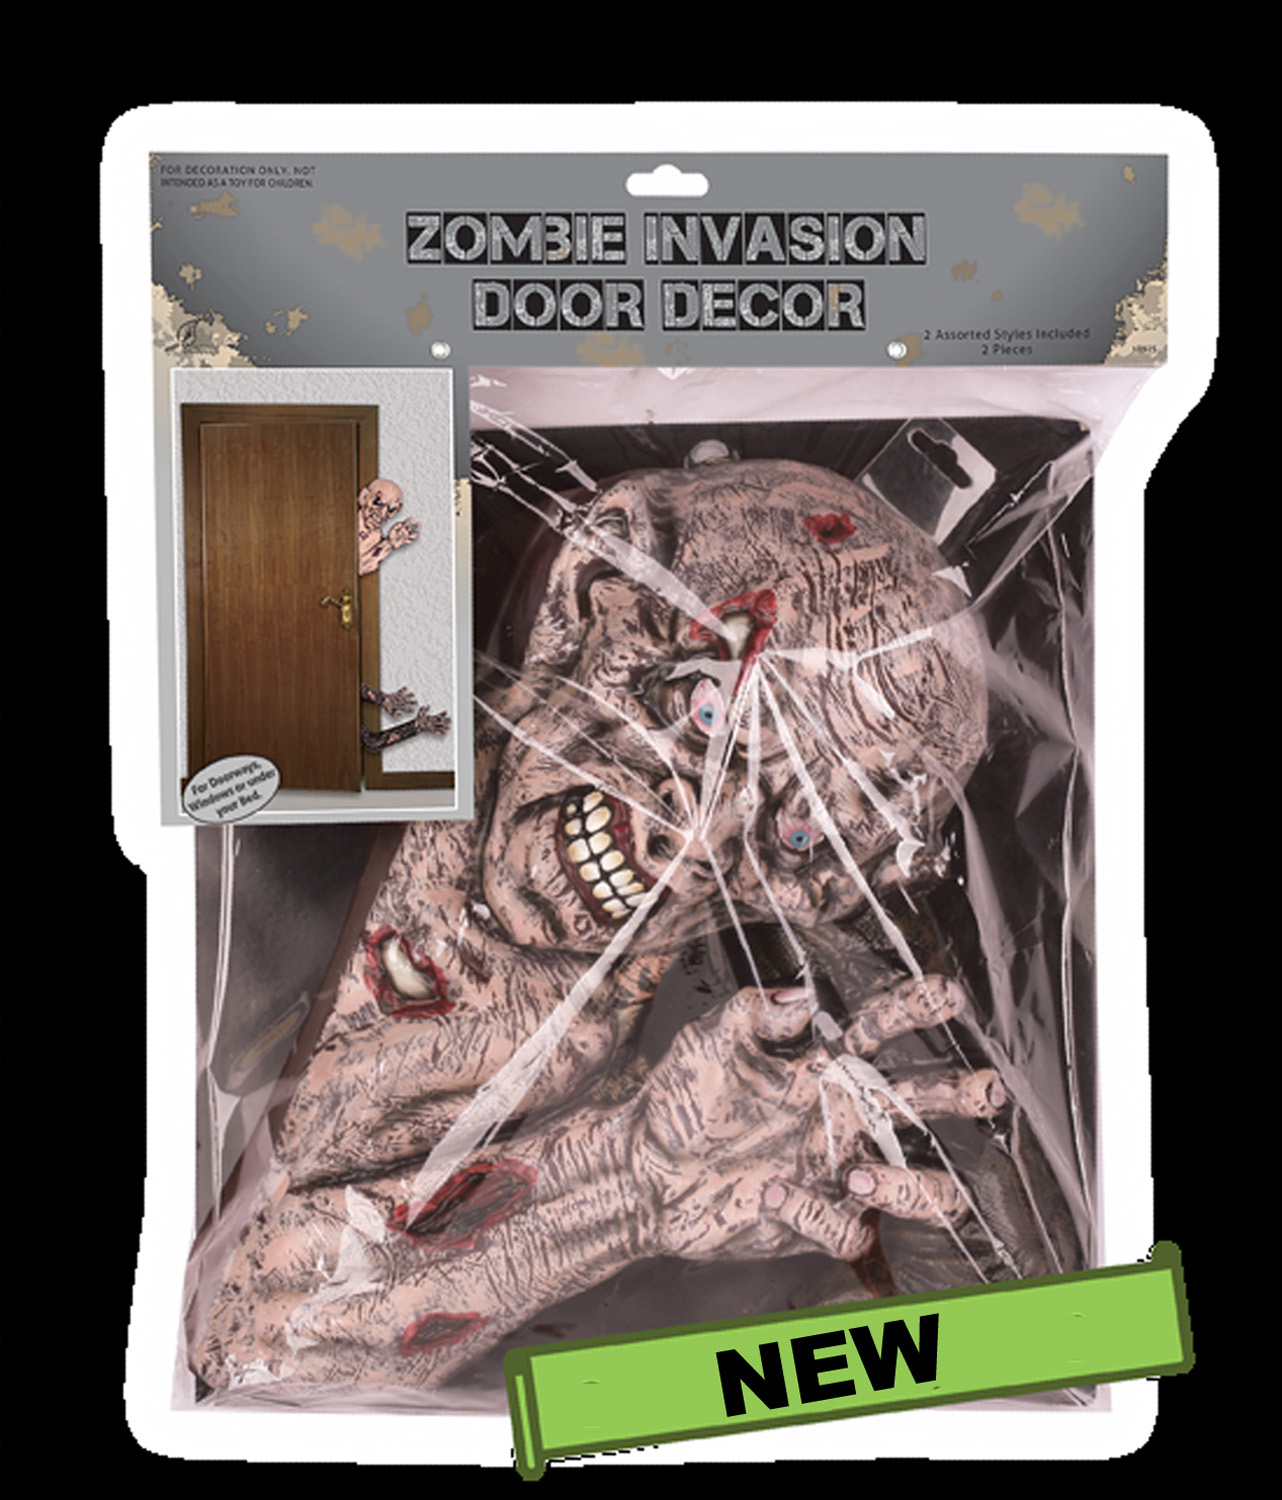 creepy haunted house halloween decoration zombie invasion door decor scary gross walking dead party prop